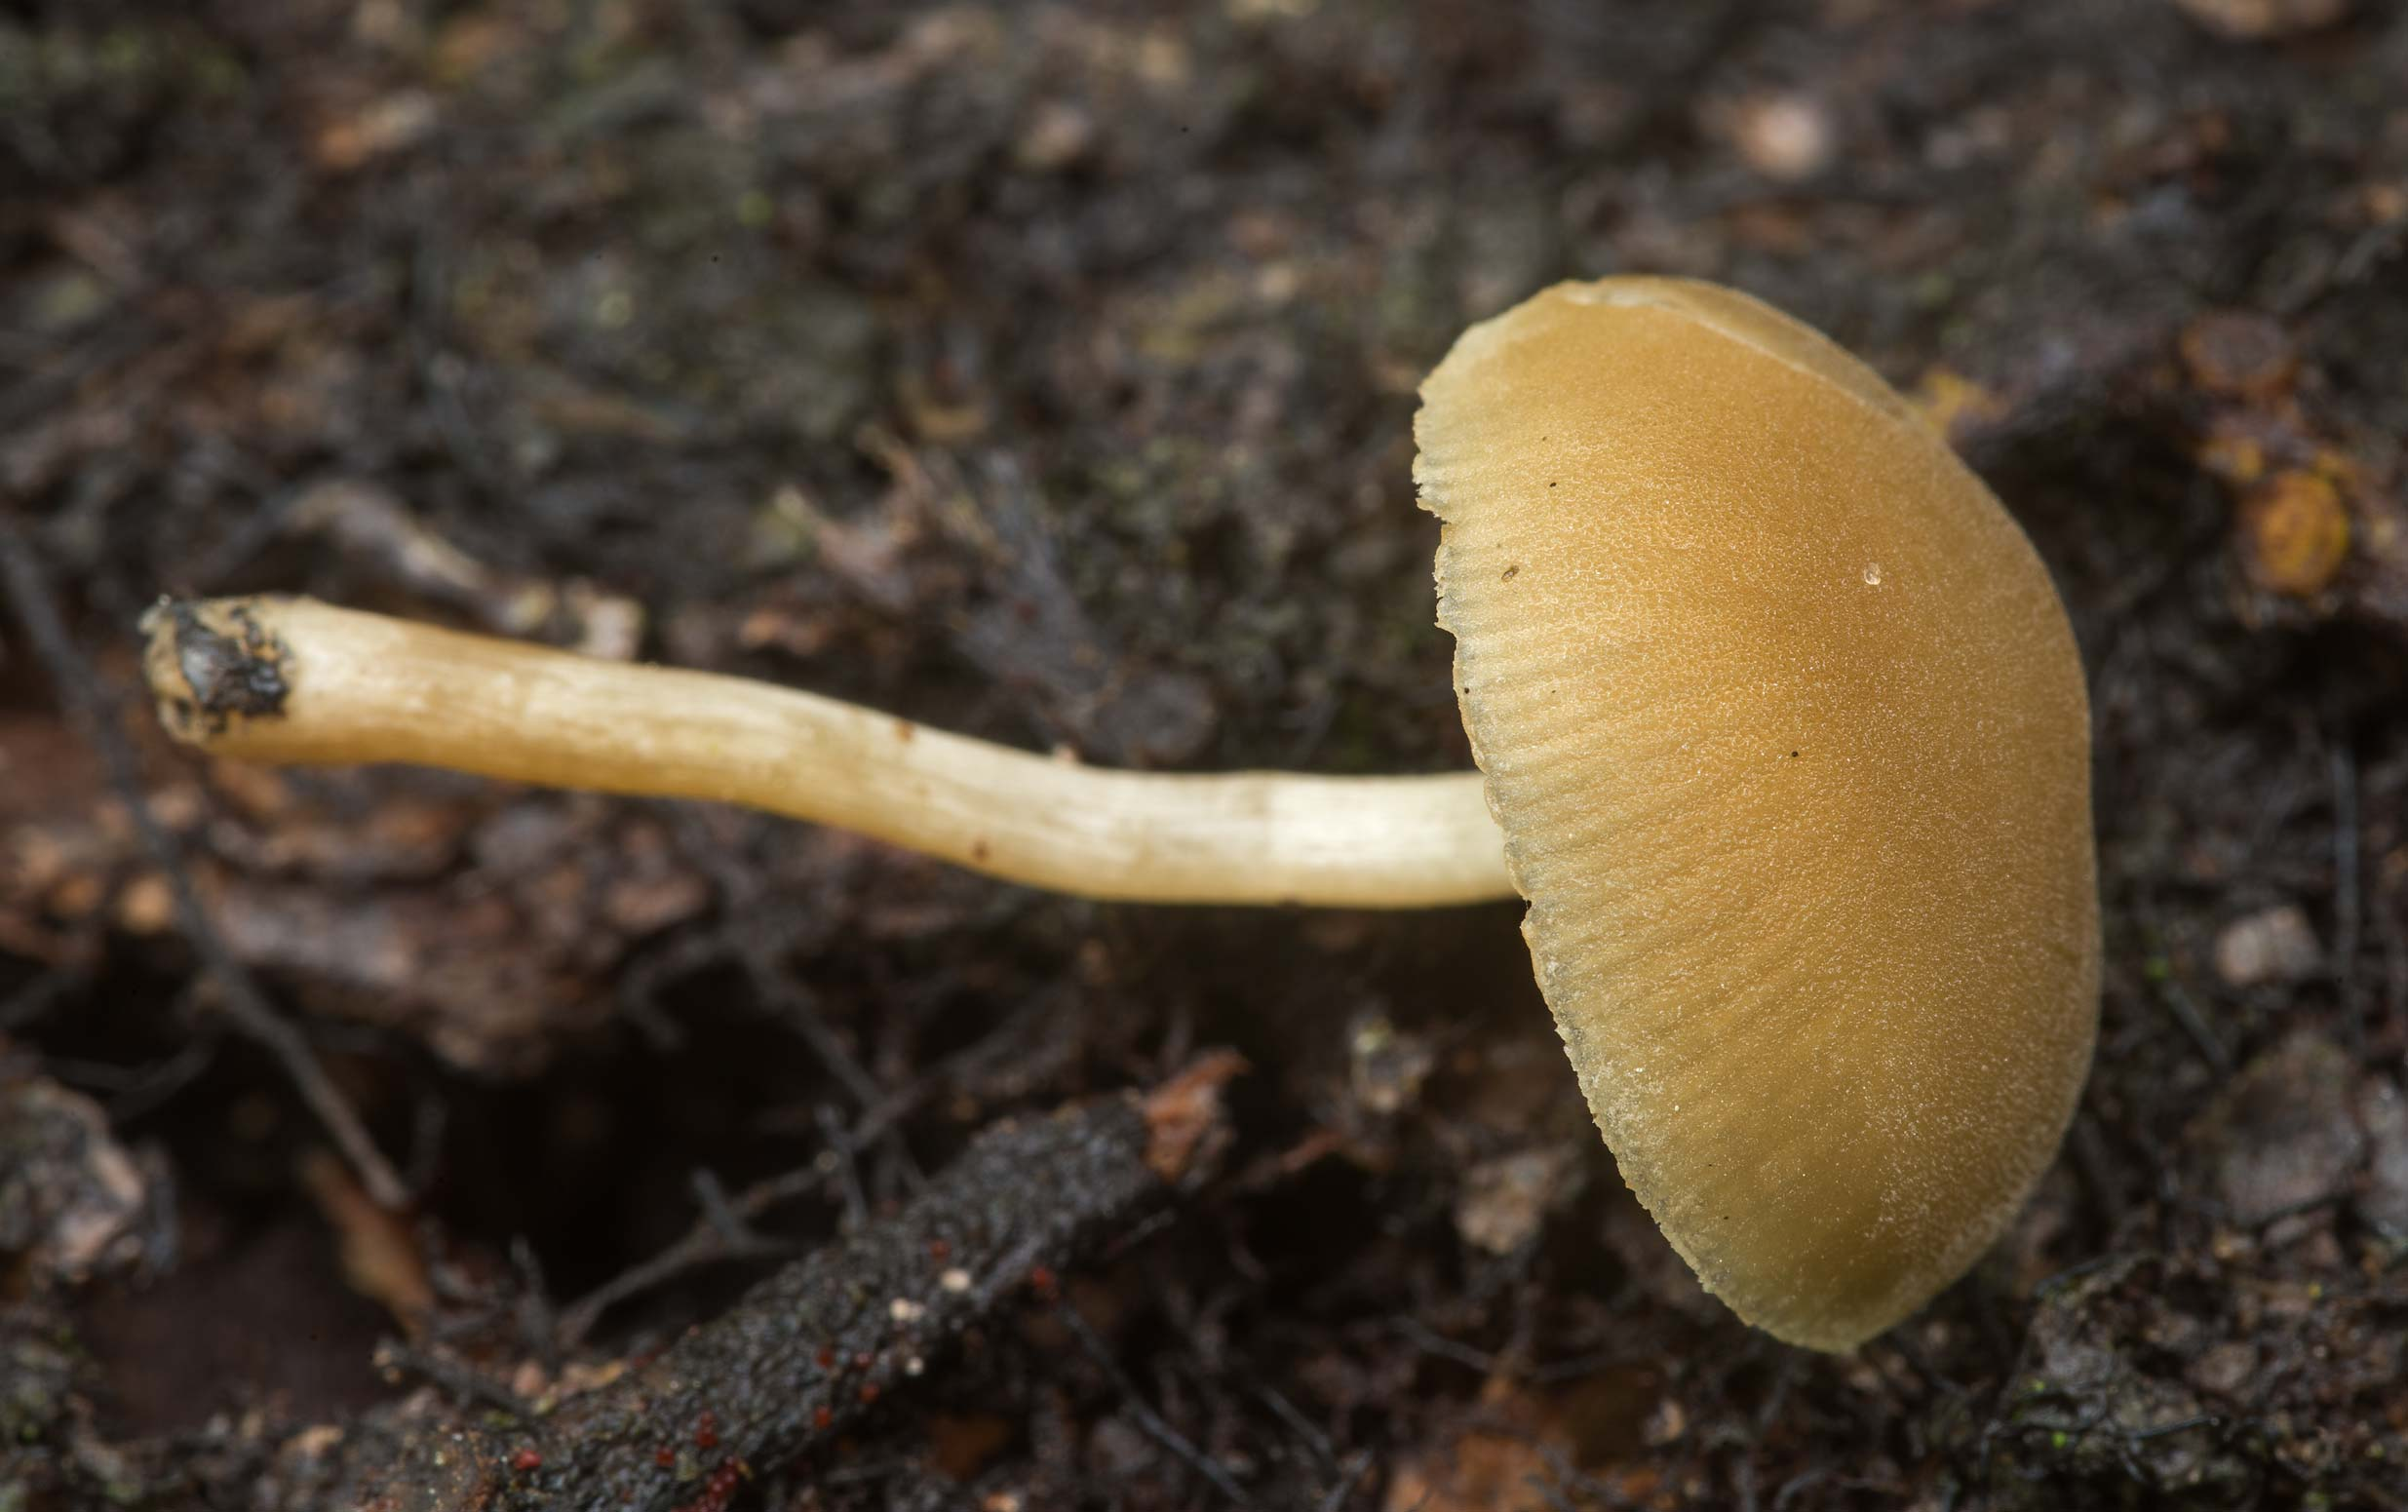 Dingy twiglet mushroom (Simocybe centunculus) on...National Forest. Richards, Texas